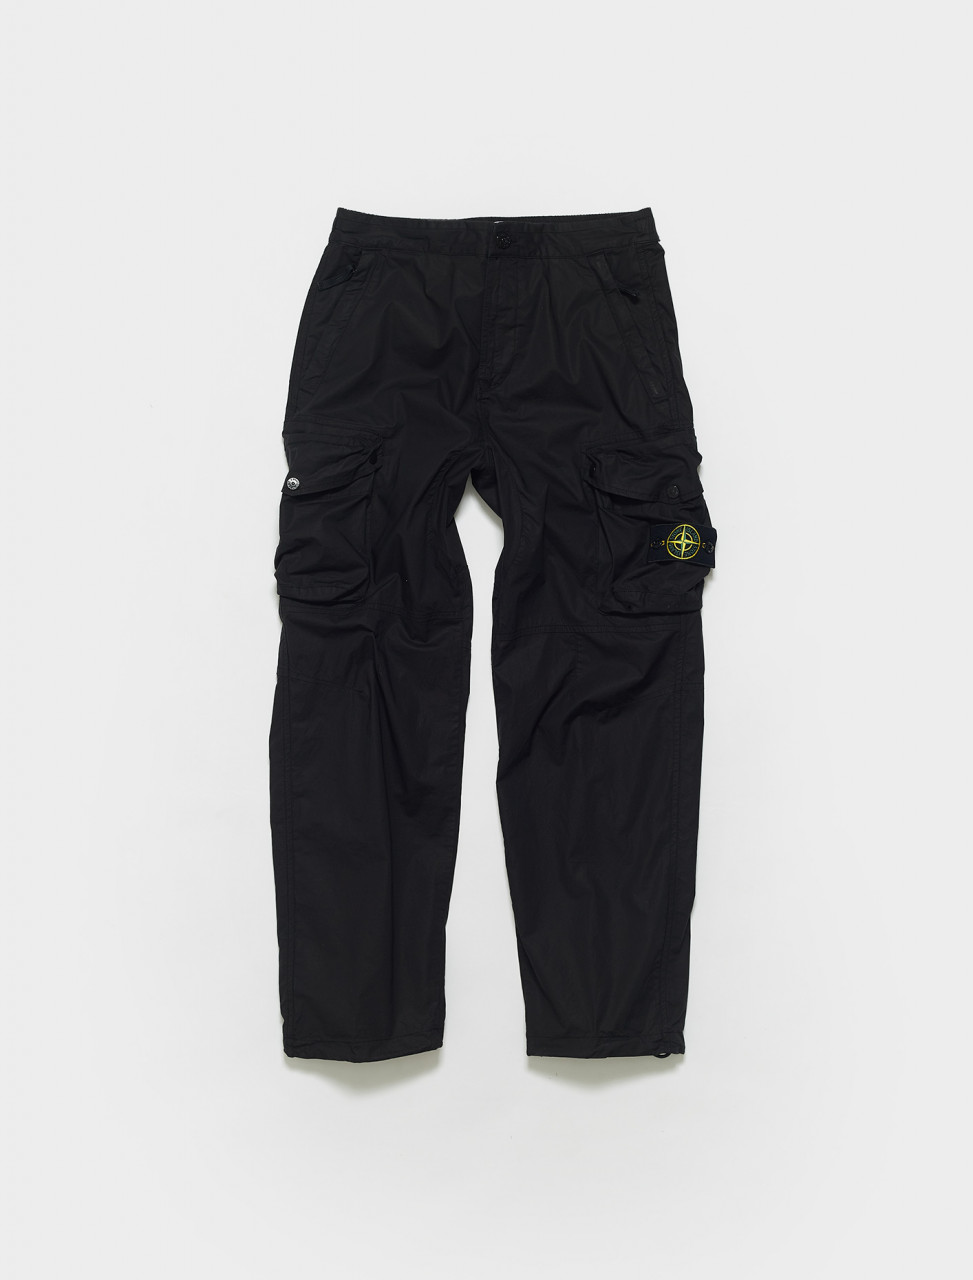 MO741530203-V0029 STONE ISLAND LIGHTWEIGHT CARGO PANTS IN BLACK